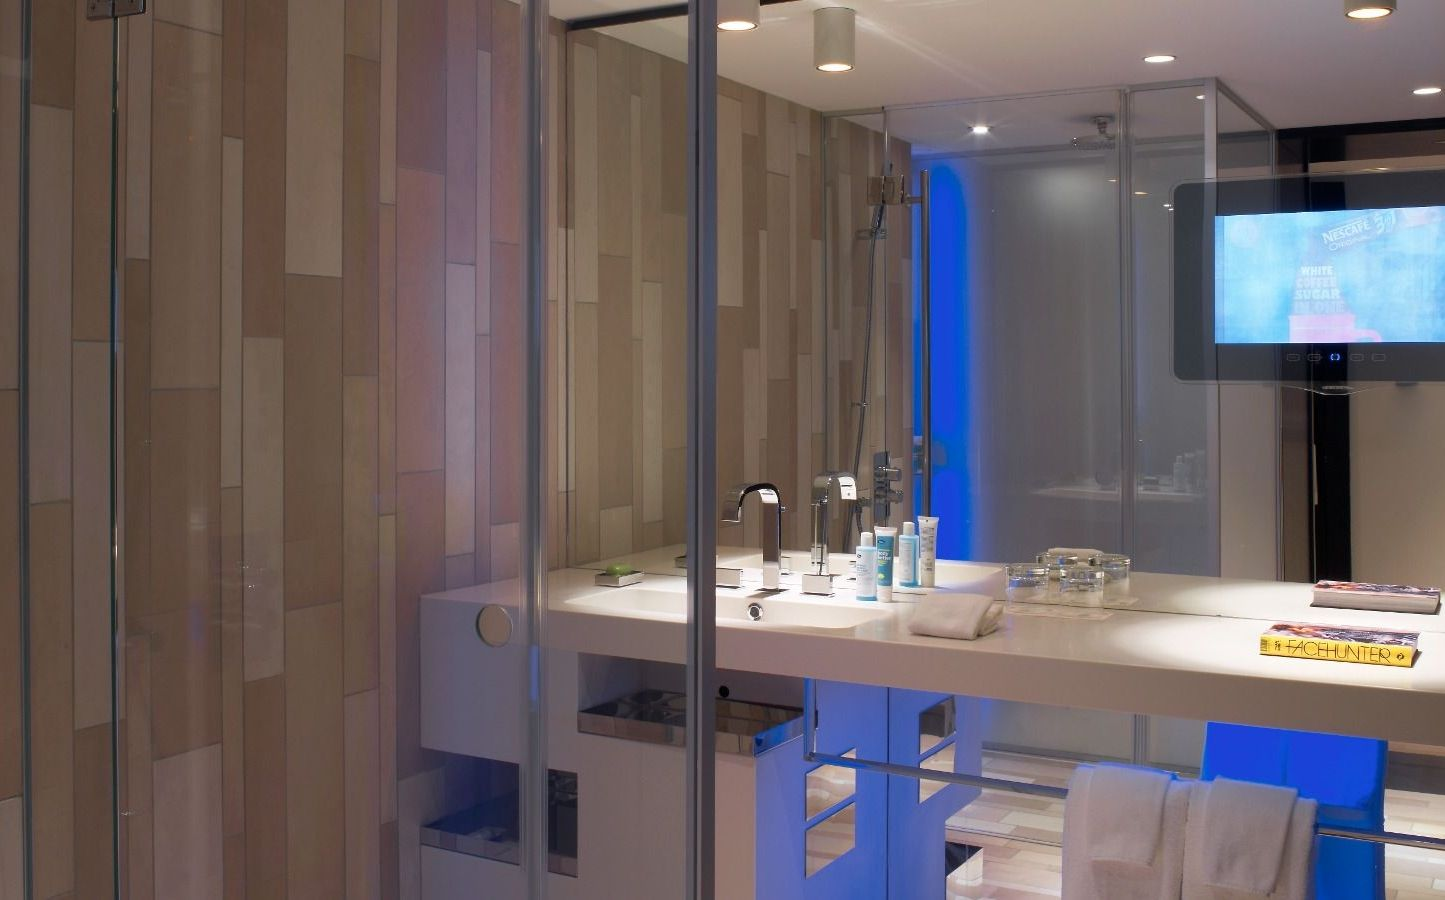 Bathroom Lighting Leicester cool hotels london | book a stay in leicester square | w london